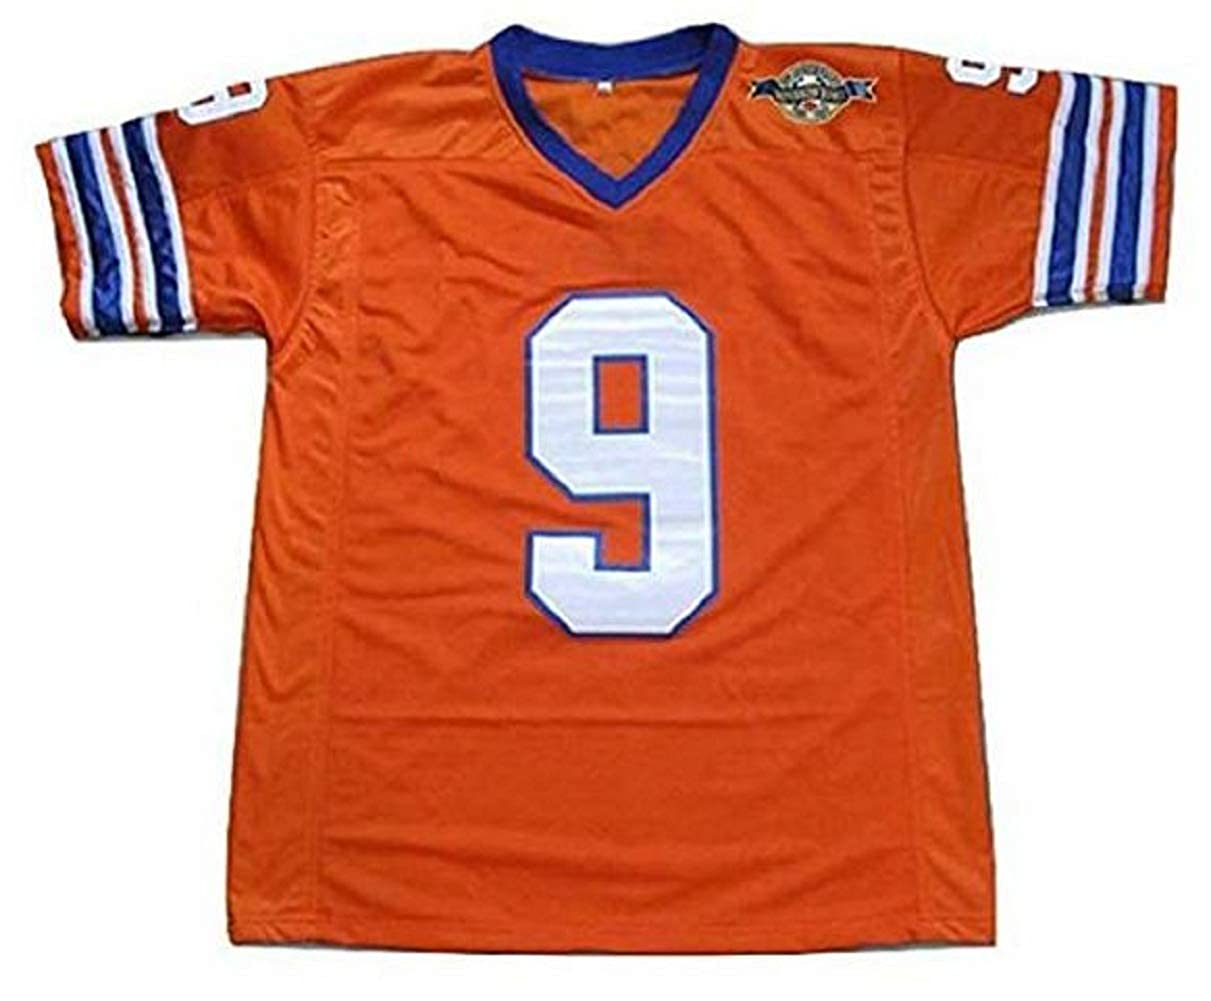 borizcustoms Adam Sandler Bobby Boucher The Waterboy Mud Dogs Football Jersey with Bourbon Bowl Patch